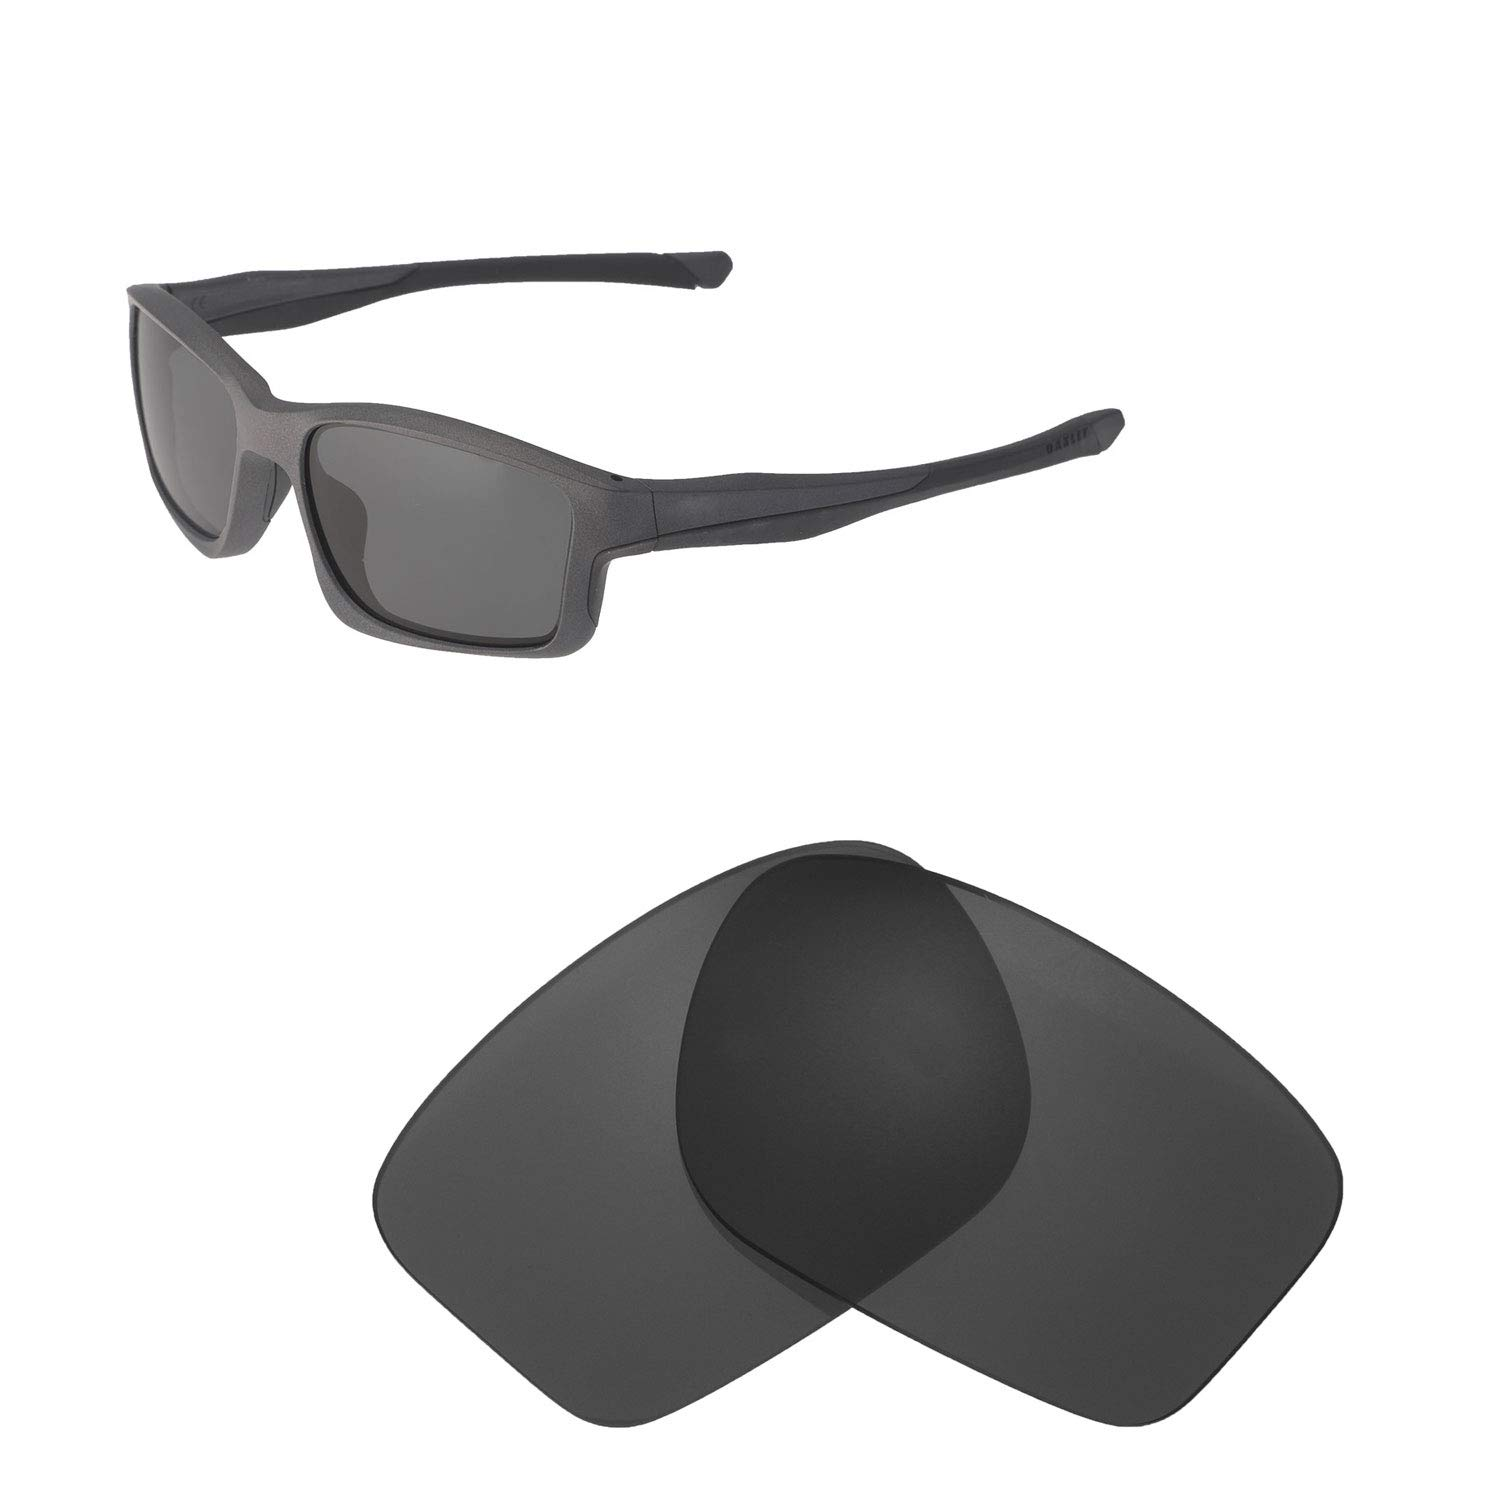 2b35e90e495 Amazon.com  Walleva Replacement Lenses for Oakley Chainlink Sunglasses -  Multiple Options Available (Black - Polarized)  Clothing